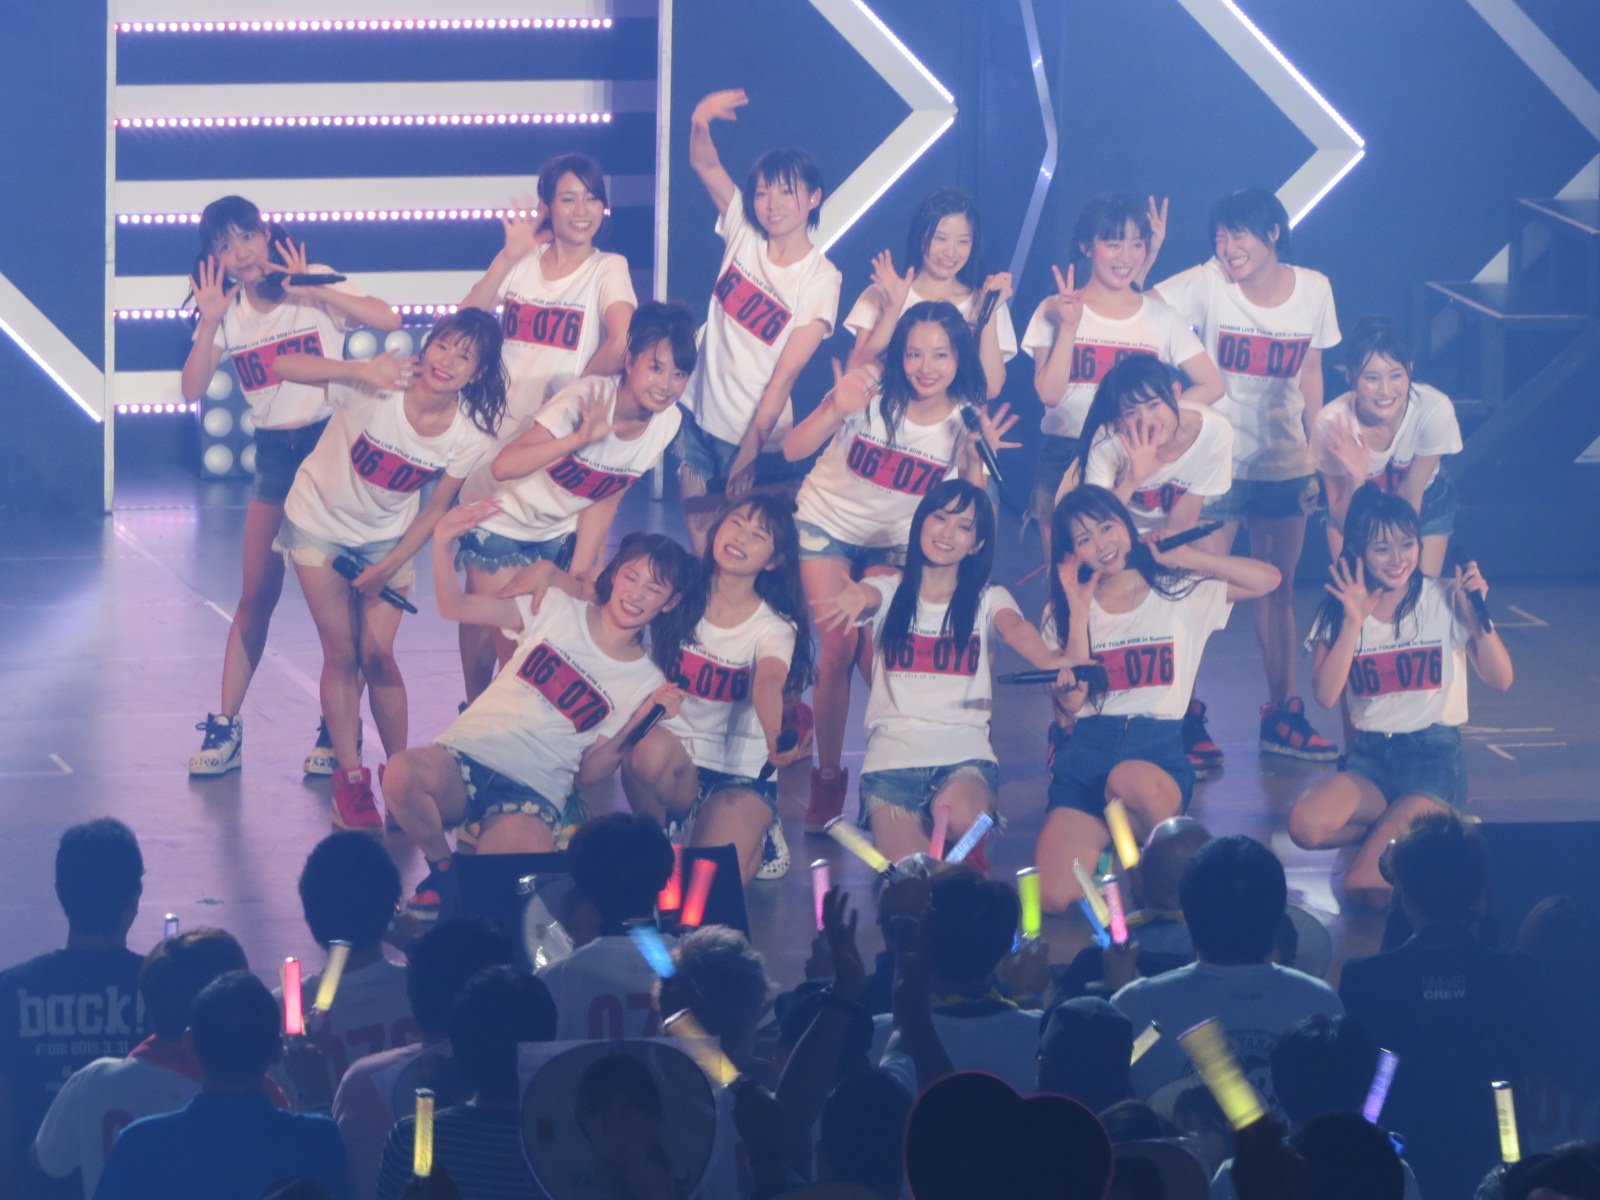 NMB48 LIVE TOUR 2018 in Summer・石川公演の画像-129